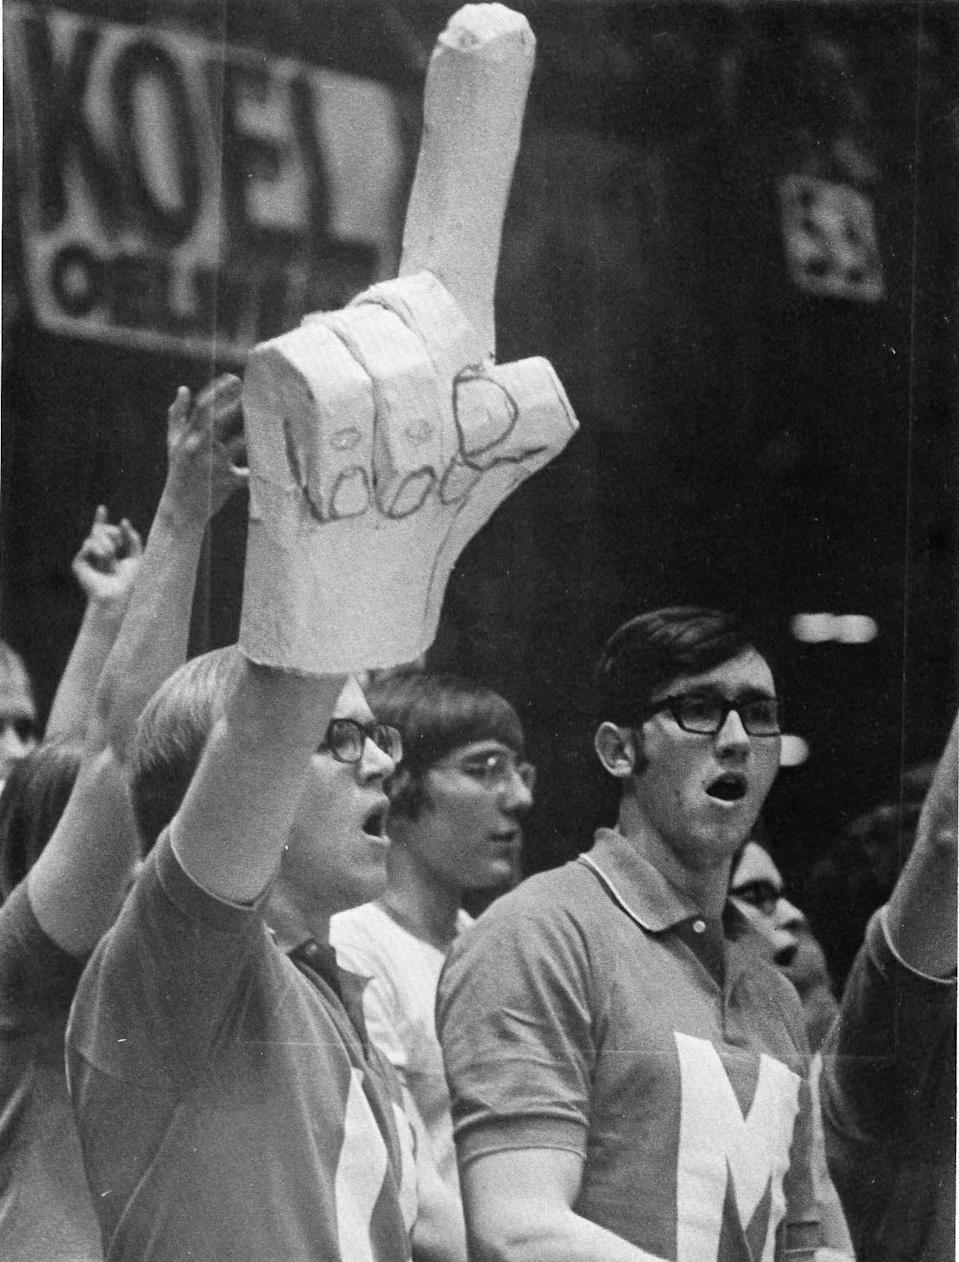 <span>Foam finger creator Steve Chmelar brought his homemade creation to the Iowa High School Athletic Association's boys state basketball finals in 1971. The Associated Press snapped a photo of him, which appeared in the <em>Des Moines Tribune</em>, and the No. 1 hand, better known as the foam finger, was born. </span>(Photo: Courtesy of Steve Chmelar)